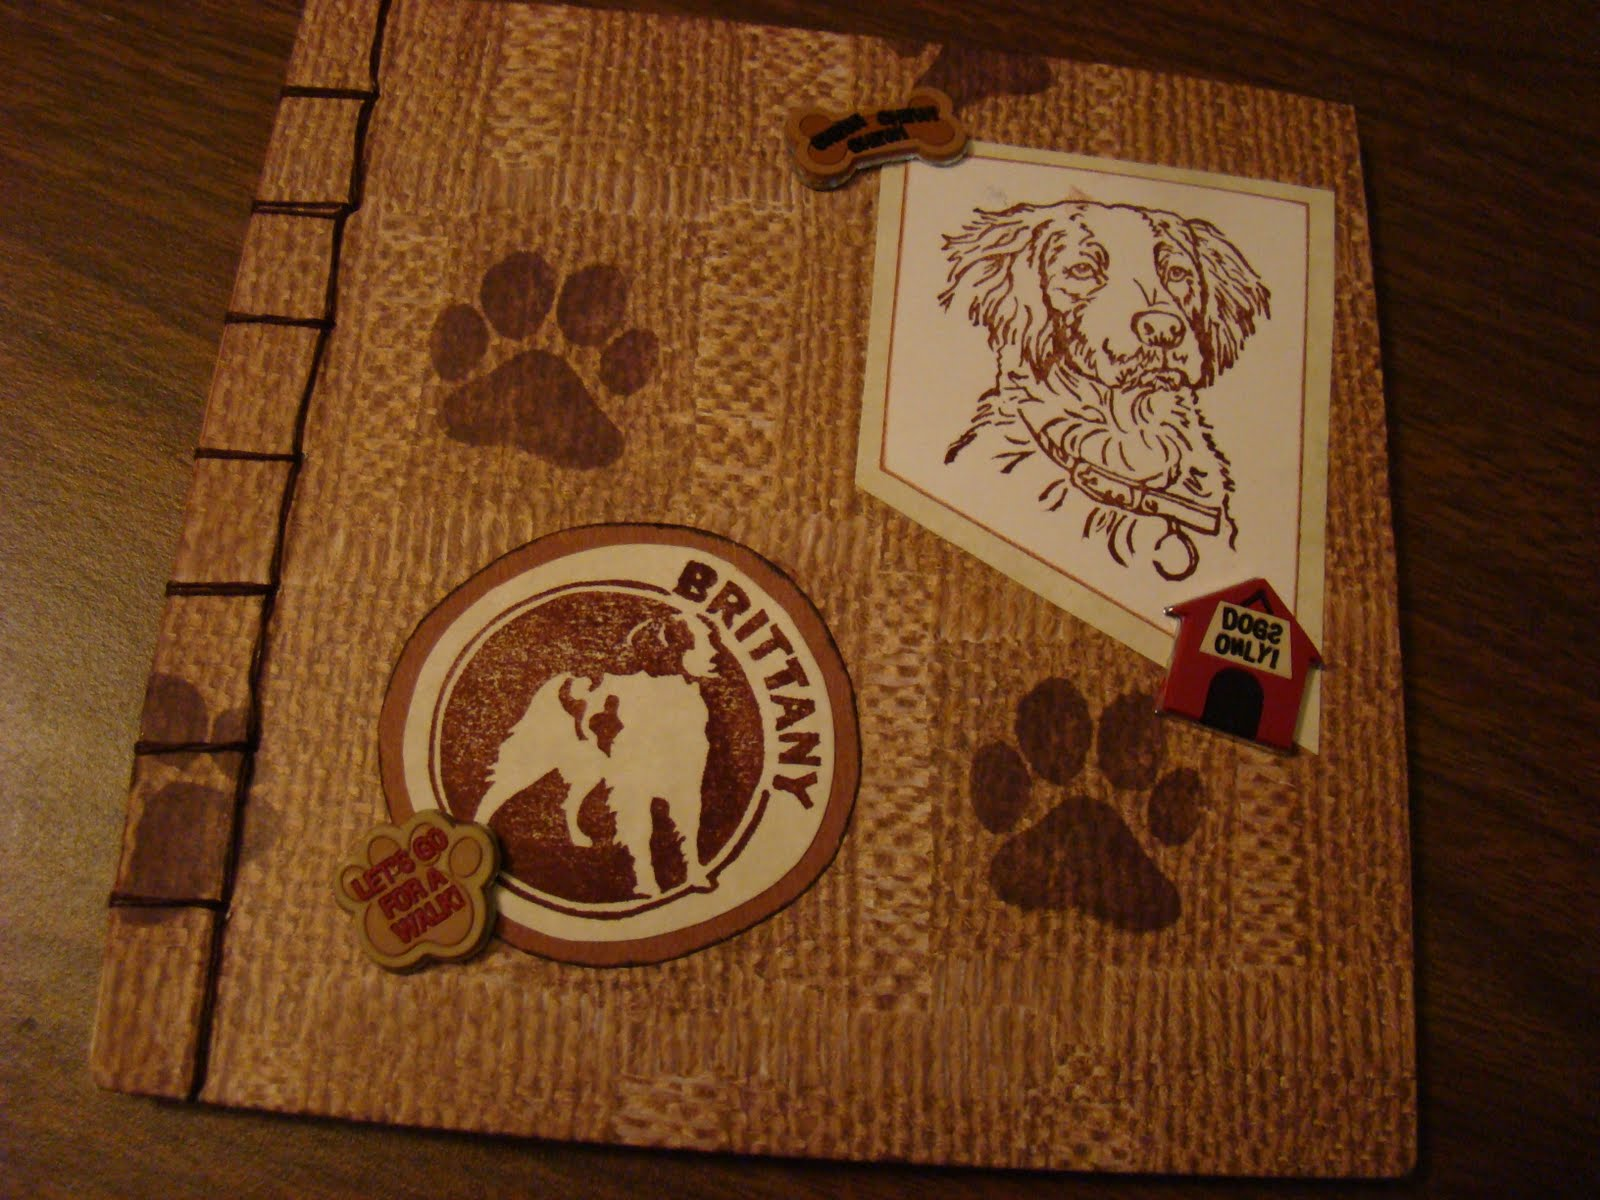 Made for the Dog Breeds postal ring, it featured my sweet Brittany